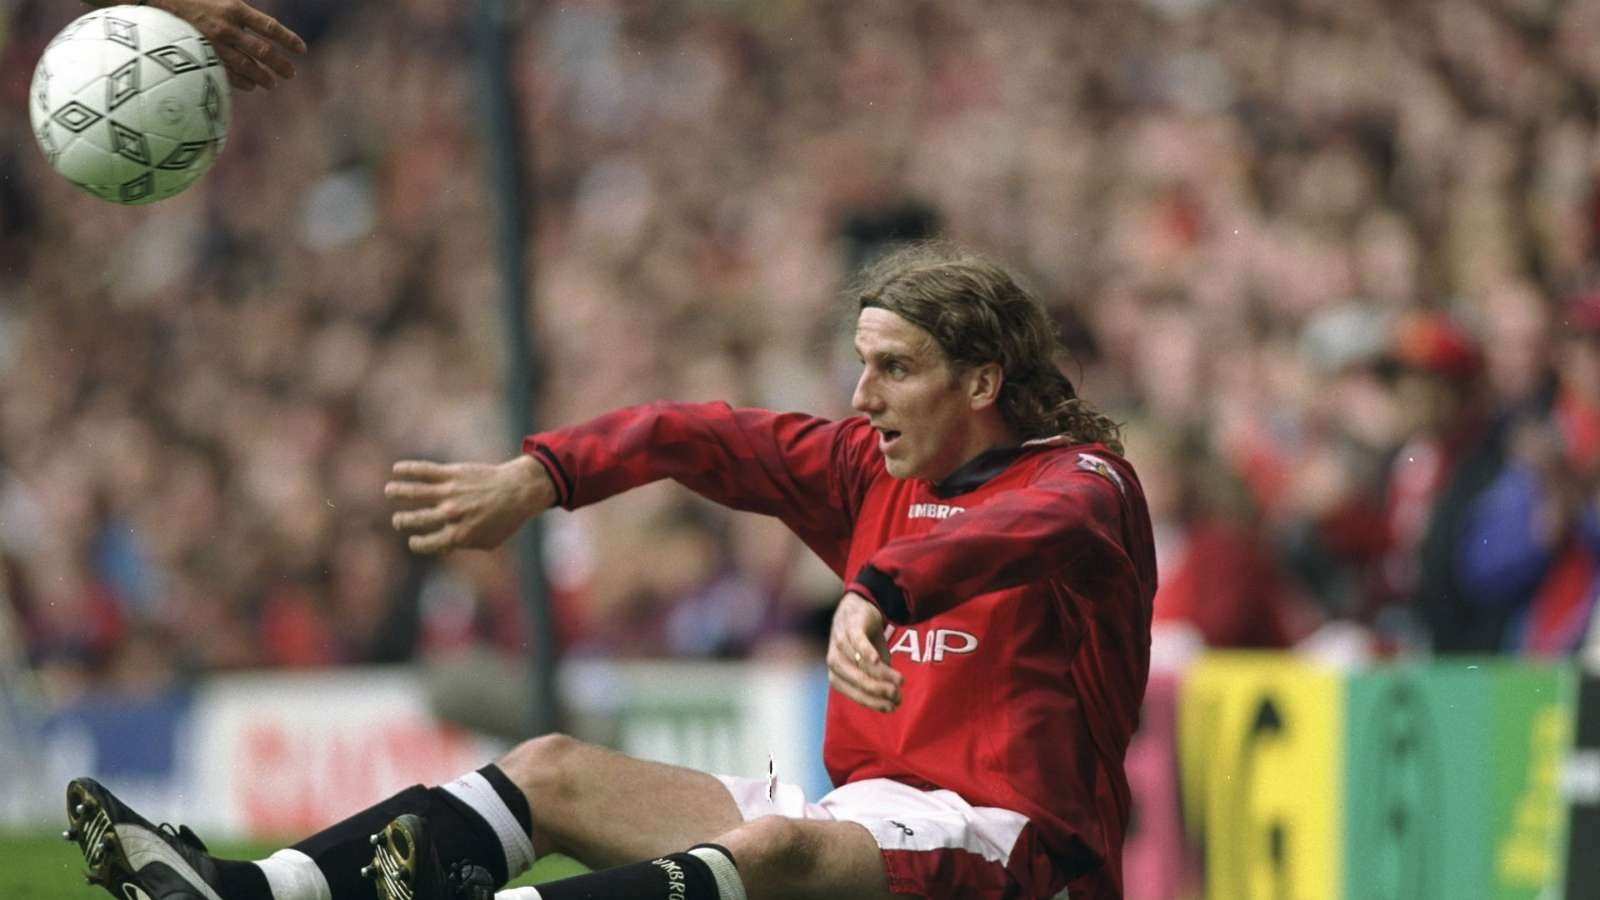 'Beckham impossible to oust from Man Utd team' as Euro 96 icon Poborsky reflects on Old Trafford career - Bóng Đá